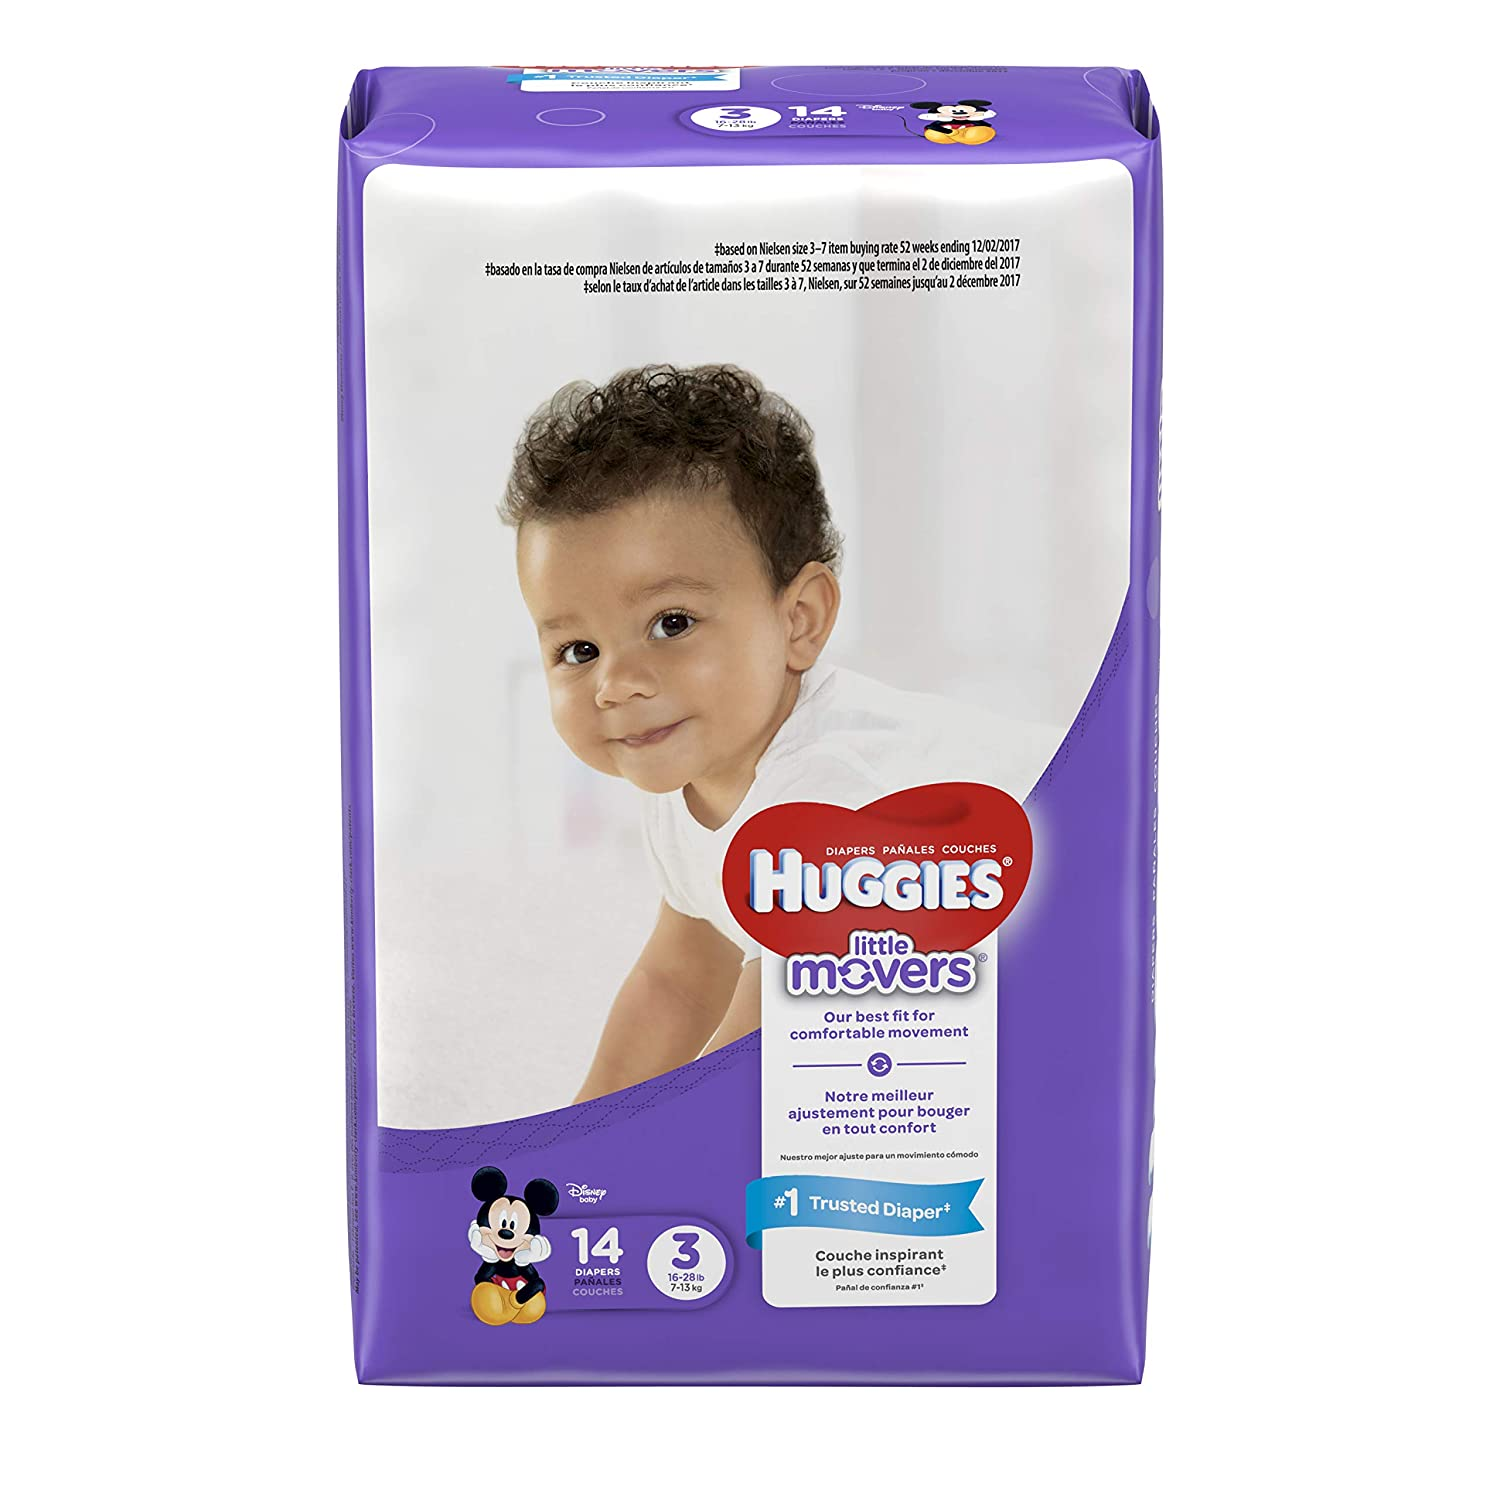 HUGGIES LITTLE MOVERS, Baby Diapers, Size 4, 12ct (Packaging May Vary) Kimberly-Clark Corp. CA